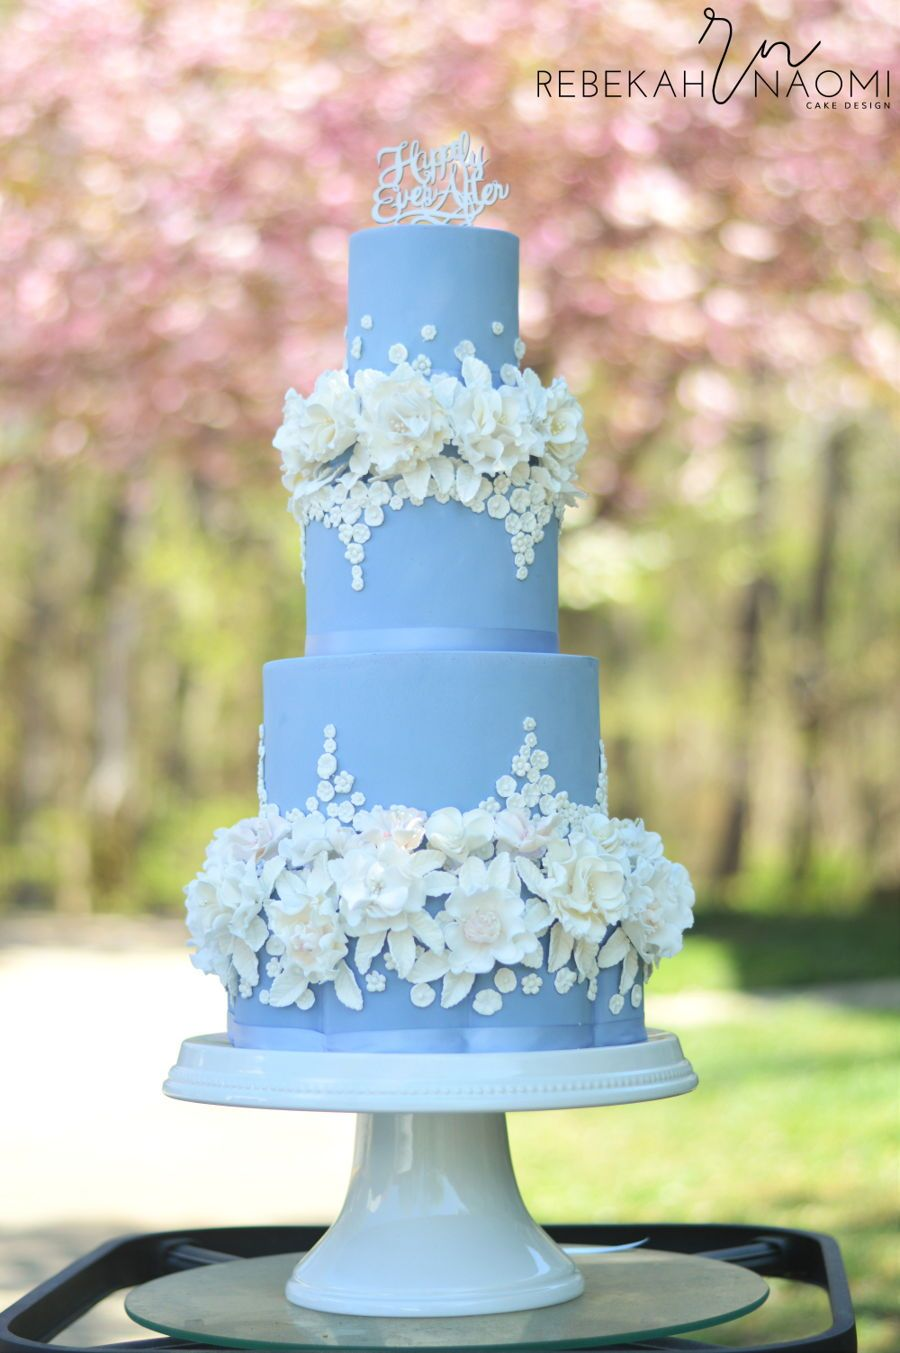 Unusual Costco Wedding Cakes Tall Wedding Cake Pops Clean Fake Wedding Cakes Vintage Wedding Cakes Old 2 Tier Wedding Cakes WhiteY Wedding Cake Toppers A Cinderella Wedding On Cake Central | Cakes,Cupcakes And Cookies ..